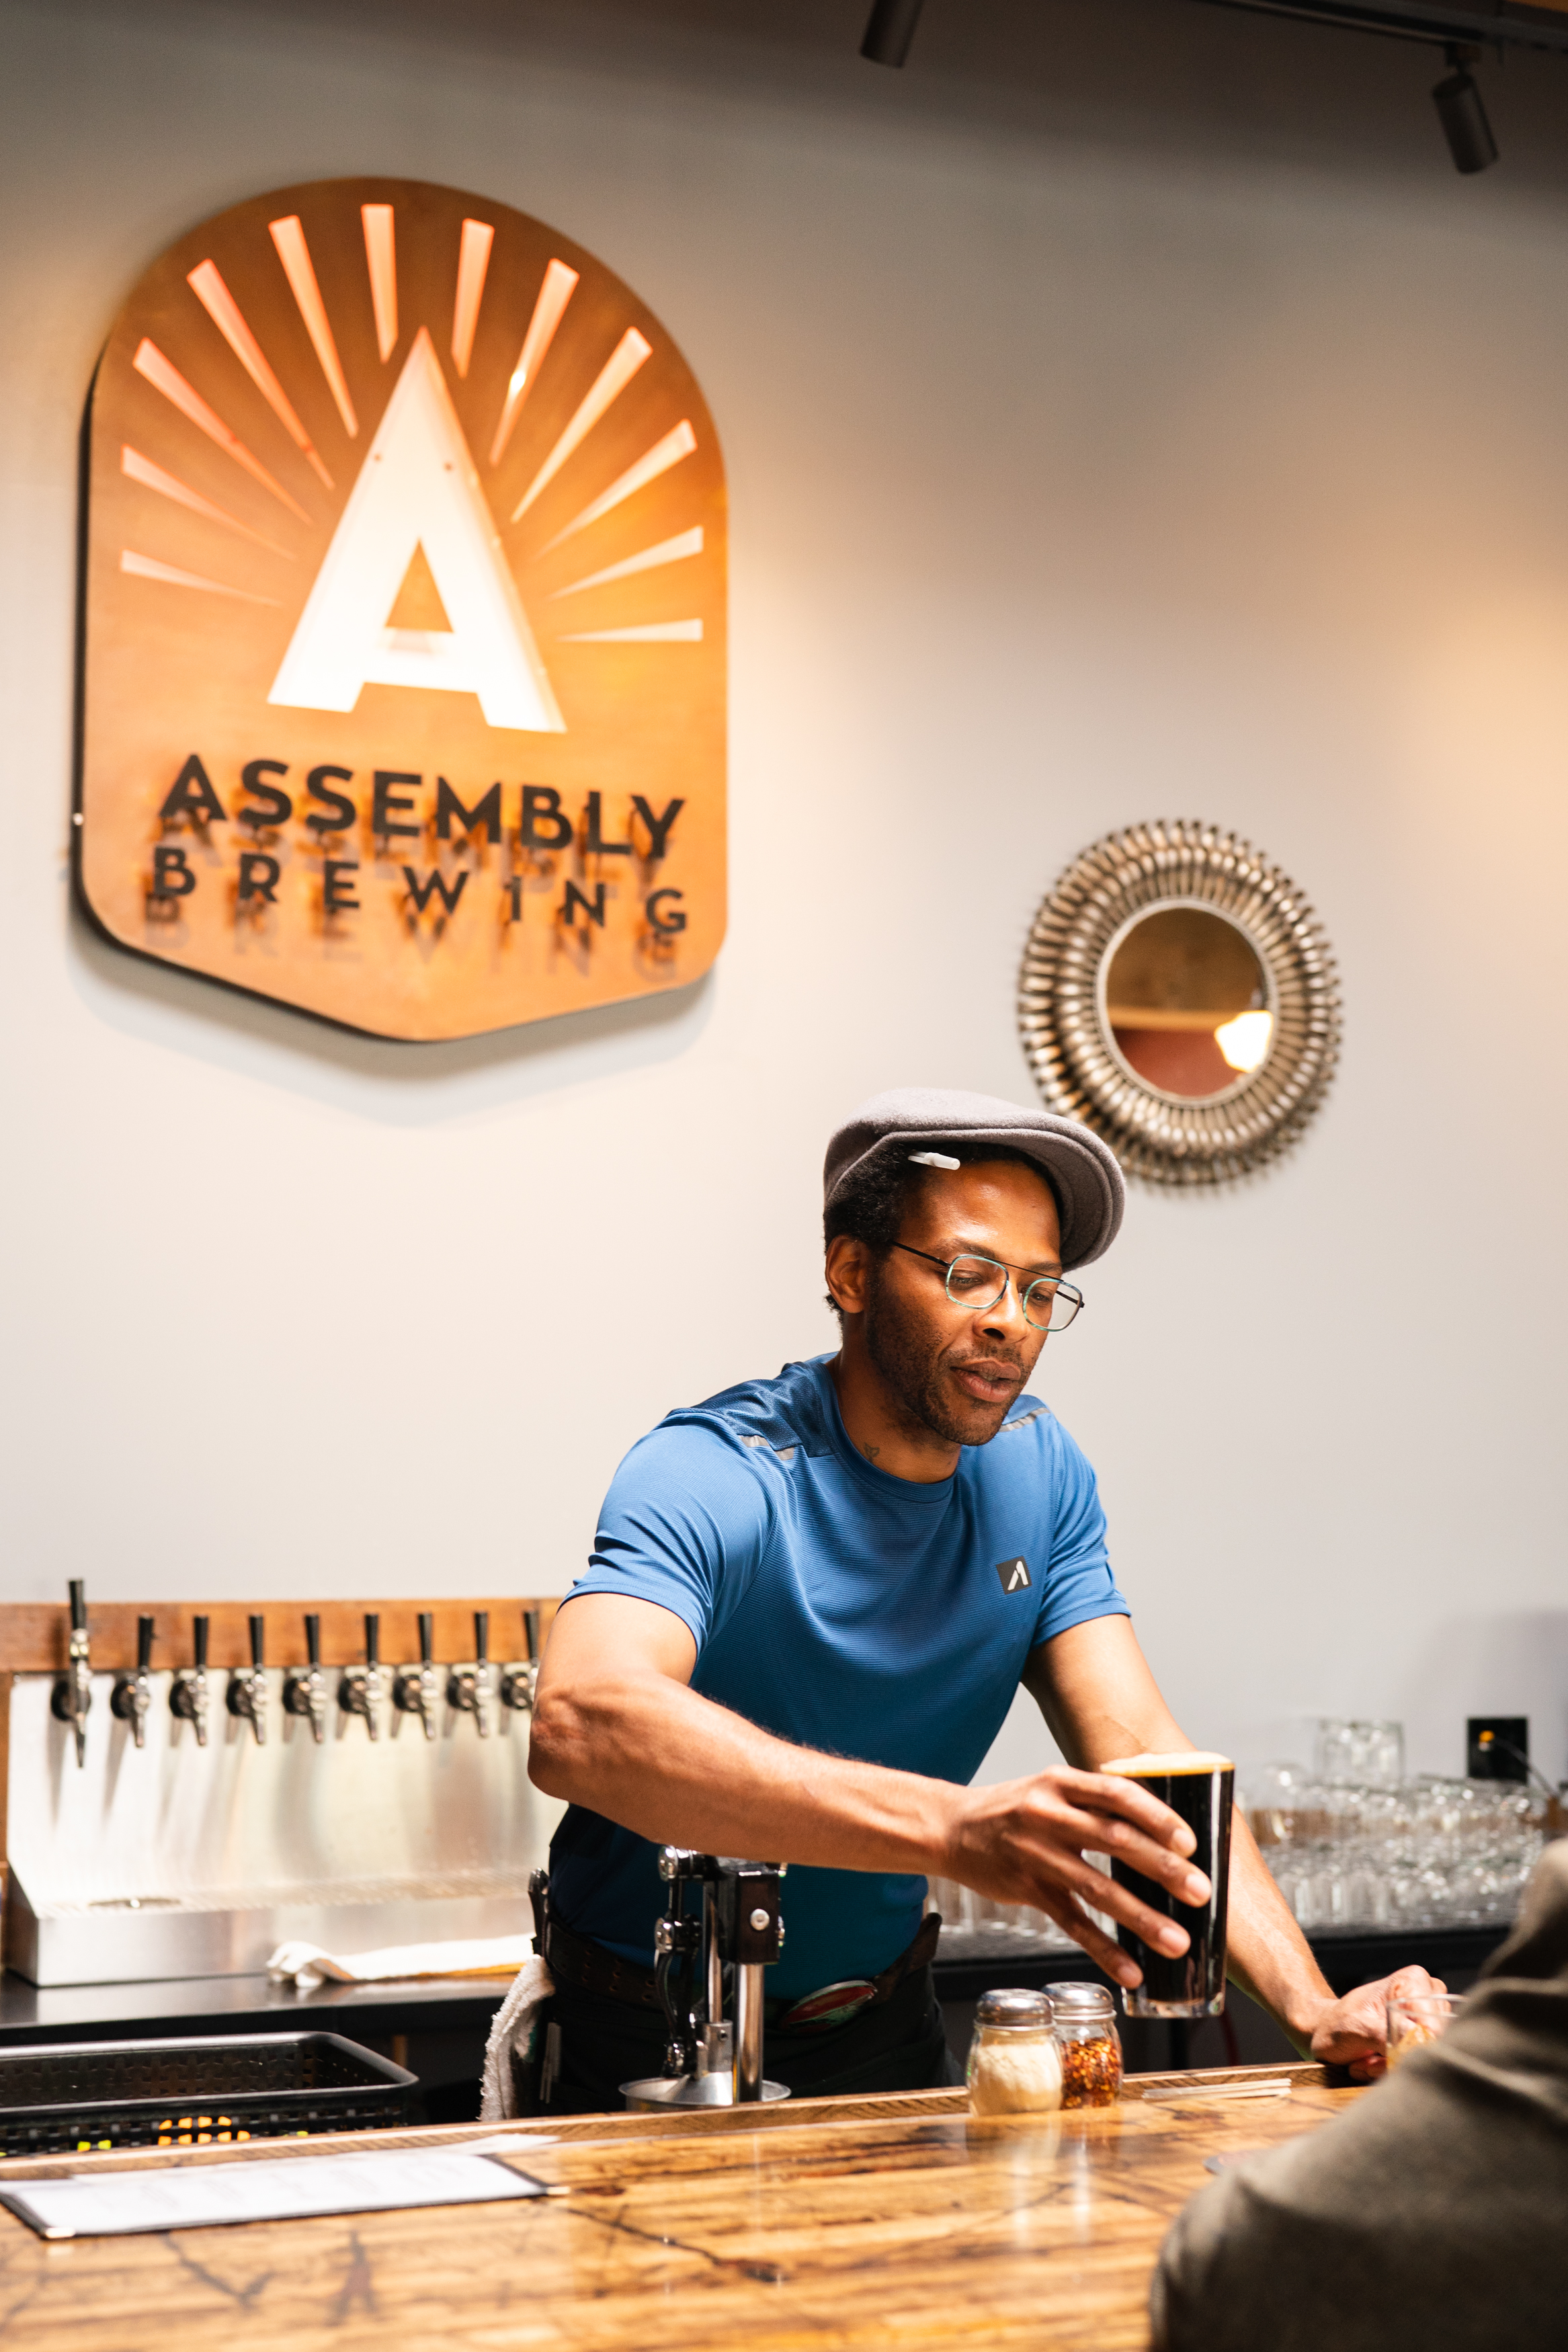 A man serves a glass of beer